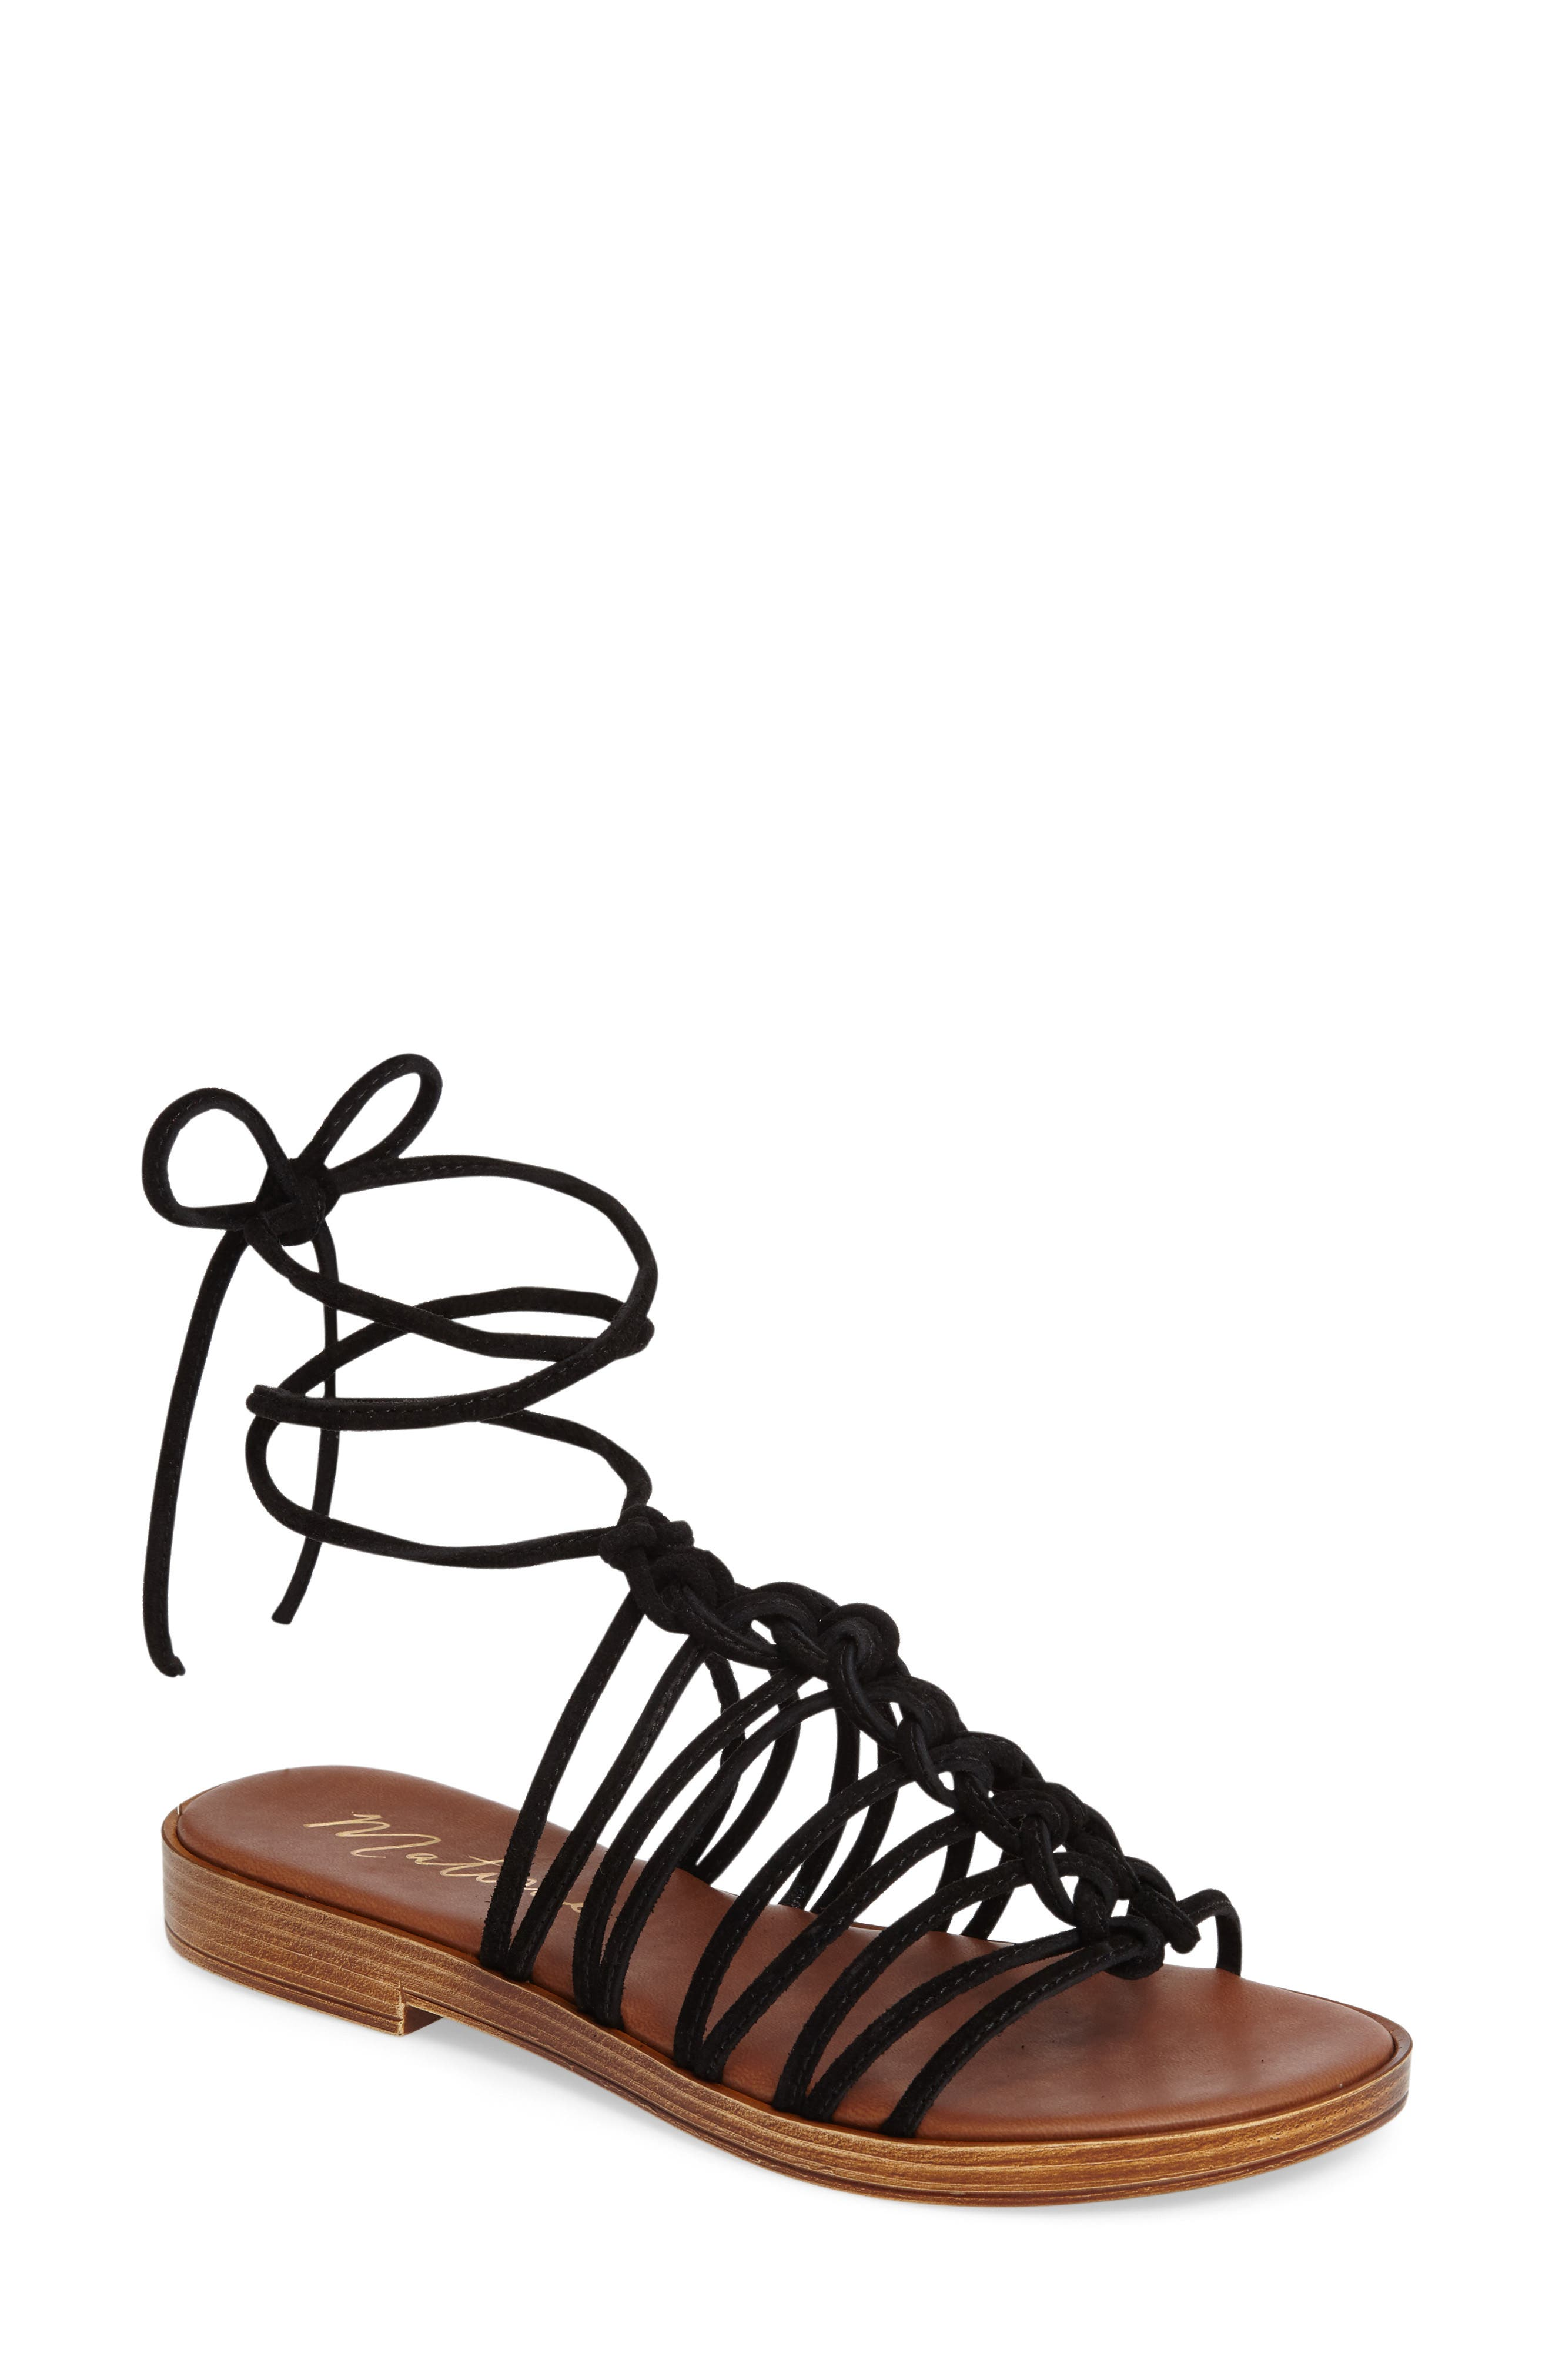 Main Image - Matisse Origin Lace-Up Sandal (Women)